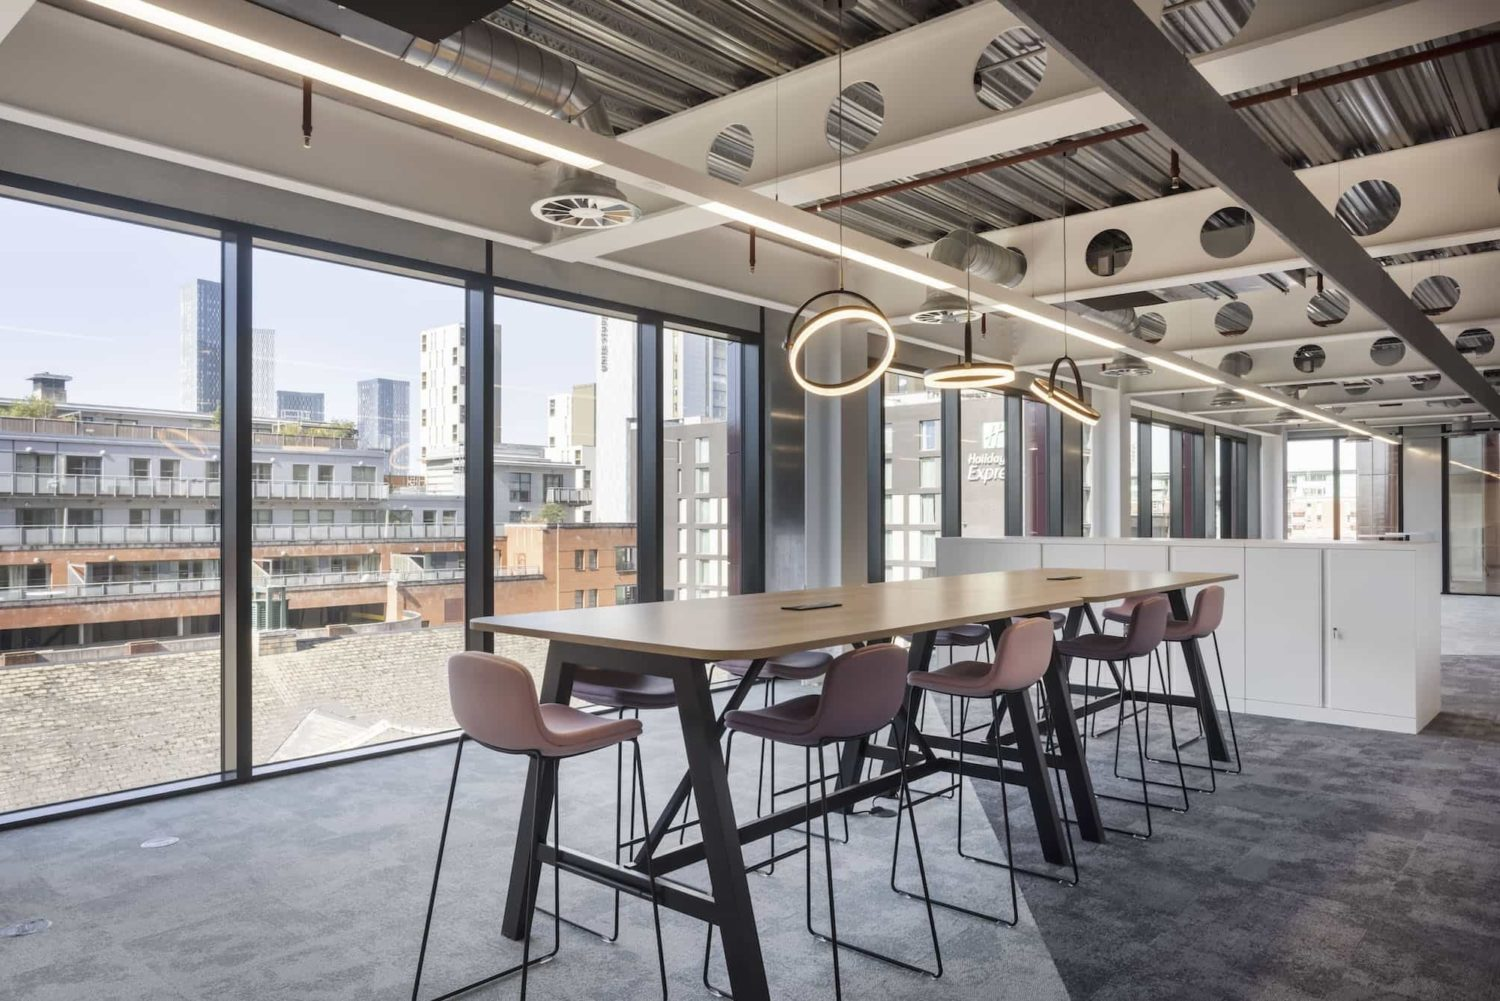 Mills Reeve office breakout space fit out